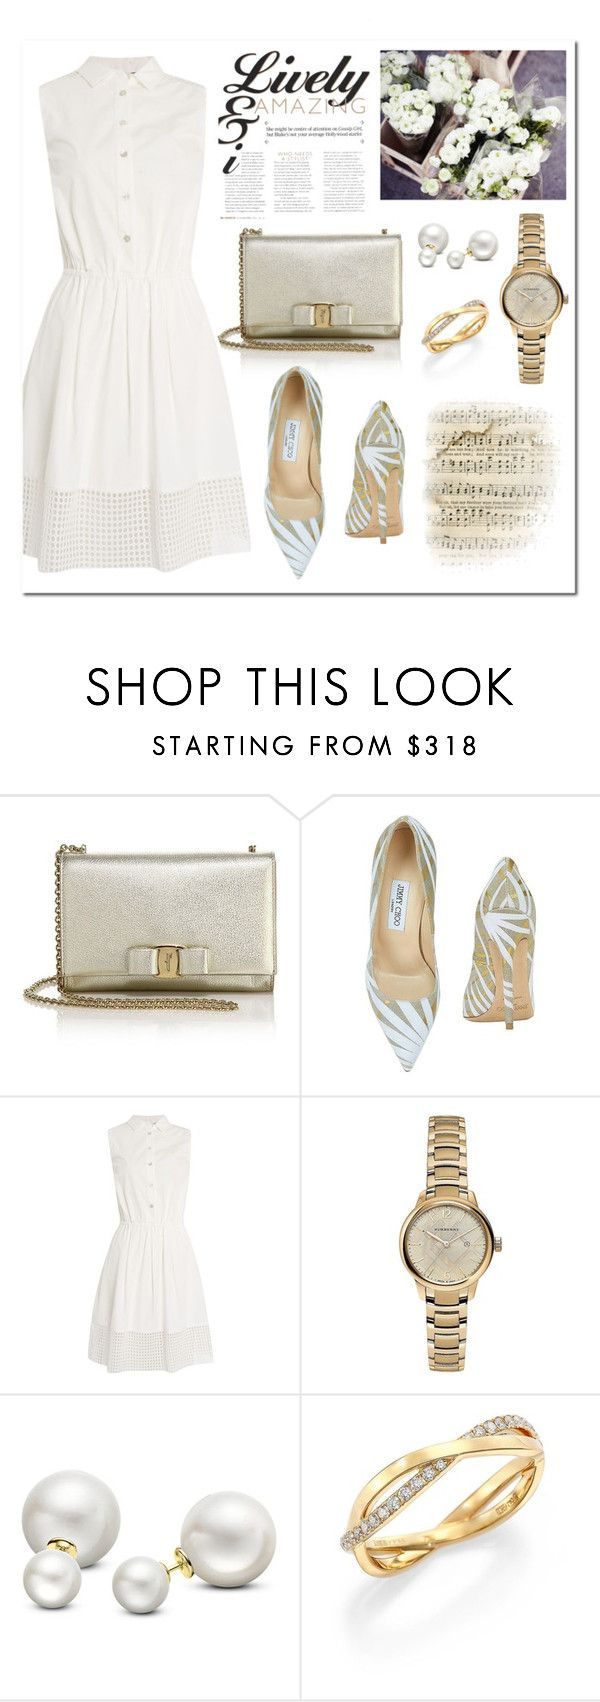 """""""Printed Pumps"""" by frechelibelle ❤ liked on Polyvore featuring Salvatore Ferragamo, Jimmy Choo, Armani Jeans, Sephora Collection, Burberry, Allurez, De Beers, jimmychoo, armani and SalvatoreFerragamo"""